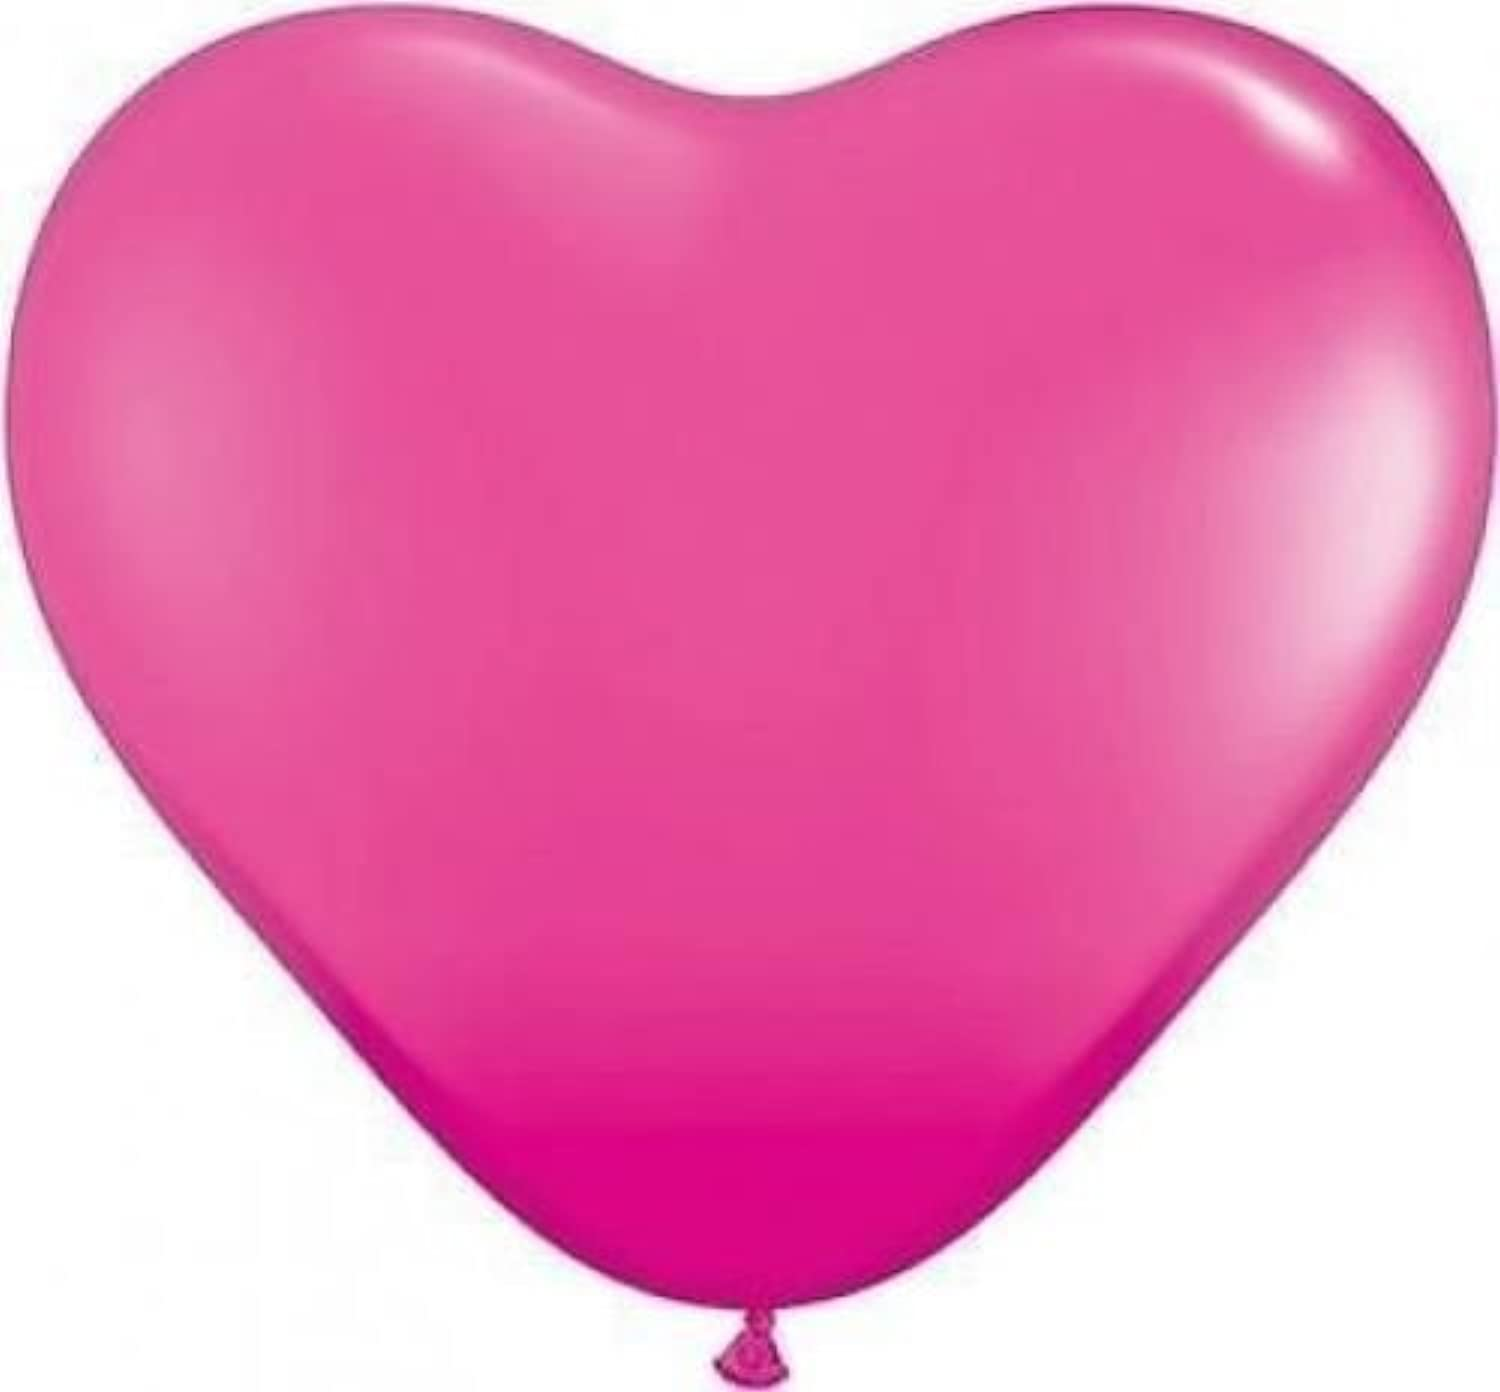 Wild Berry Pink 11 Qualatex Heart Shaped Latex Balloons x 10 by Qualatex